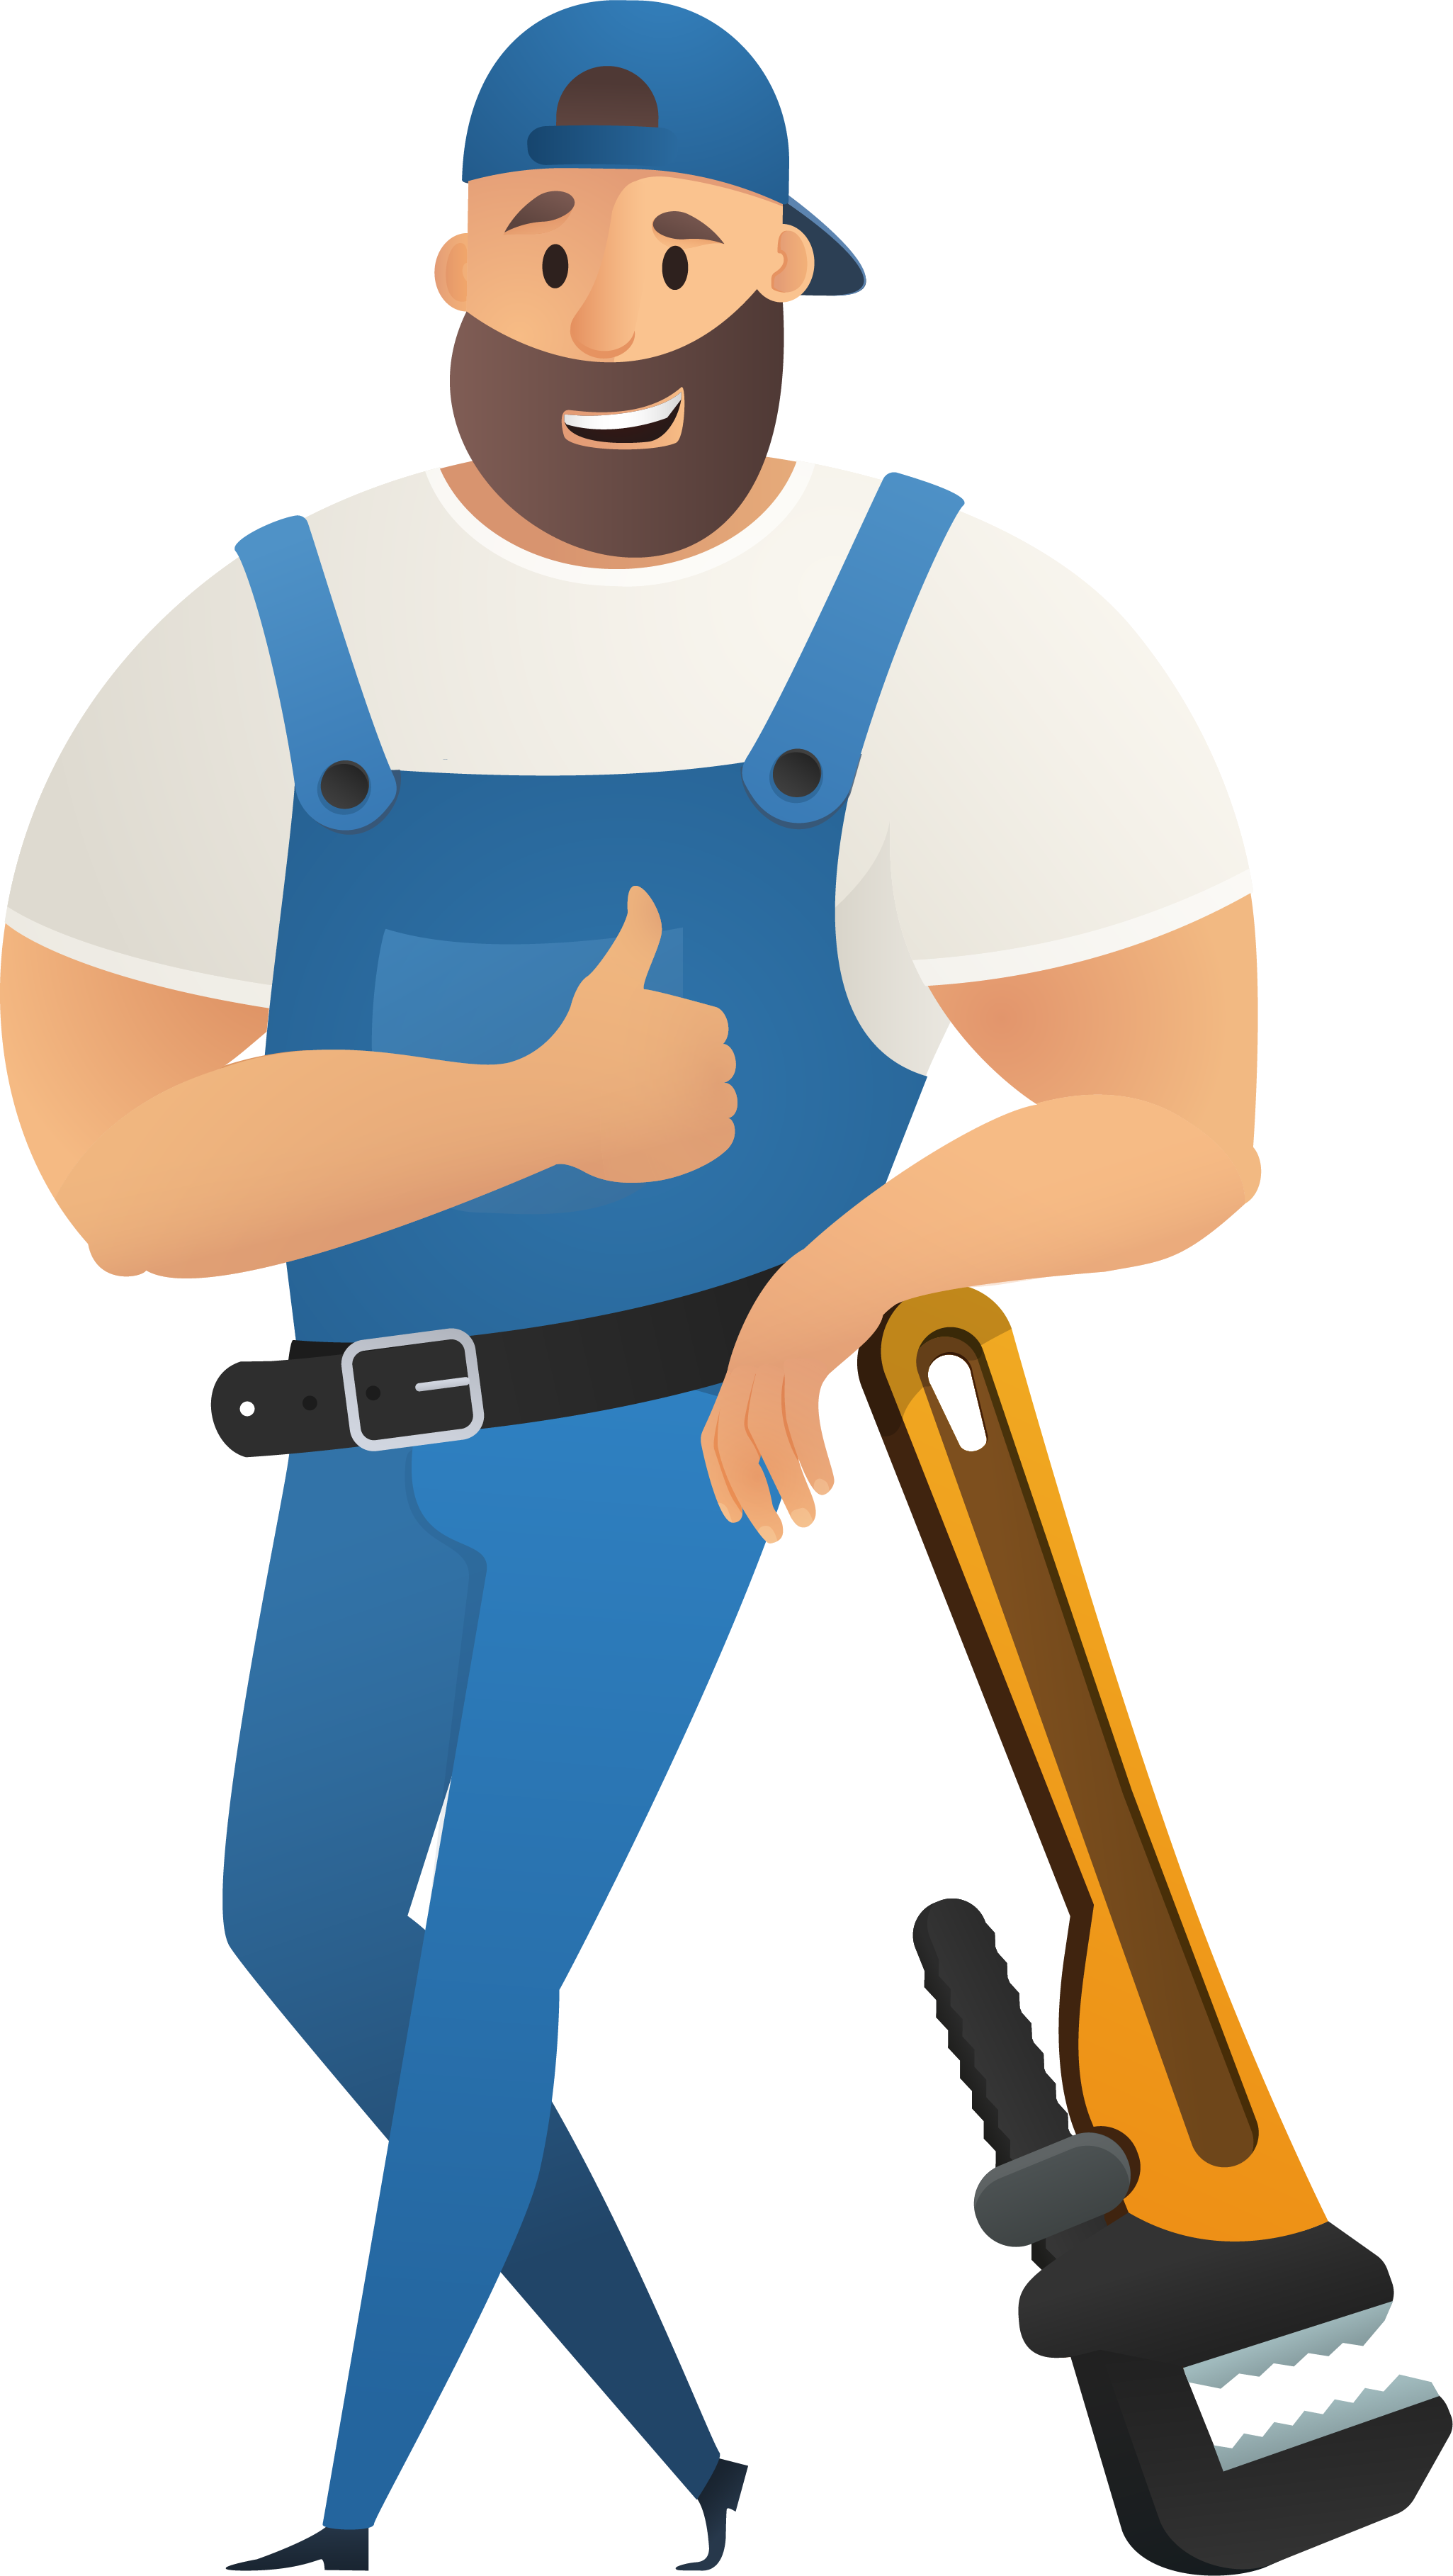 best local plumber in blue overalls leaning against a giant pipe wrench